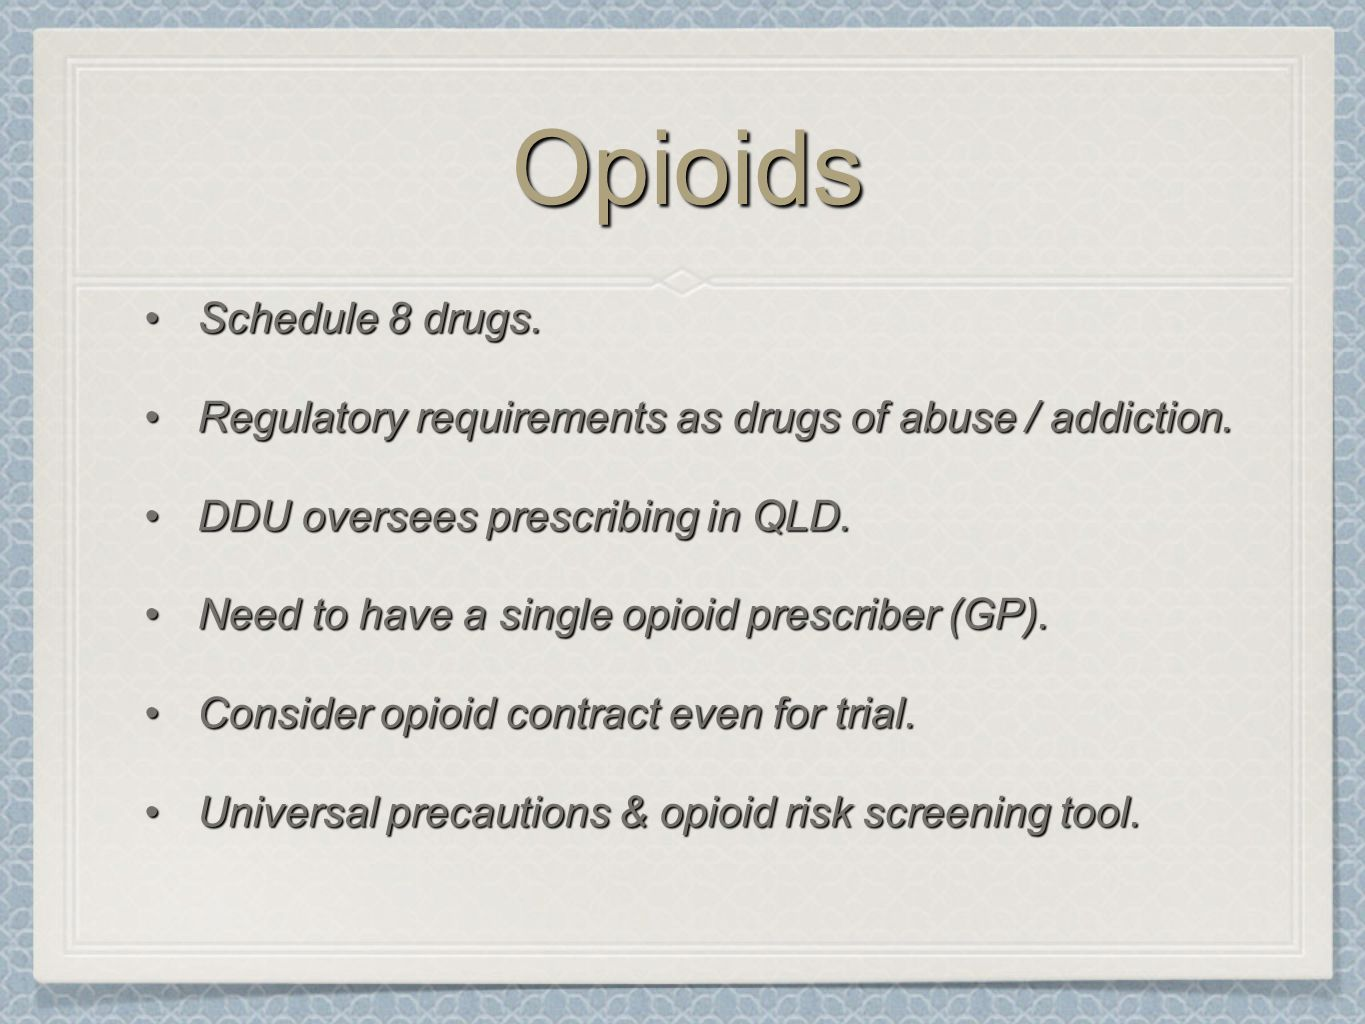 Opioids Schedule 8 drugs.